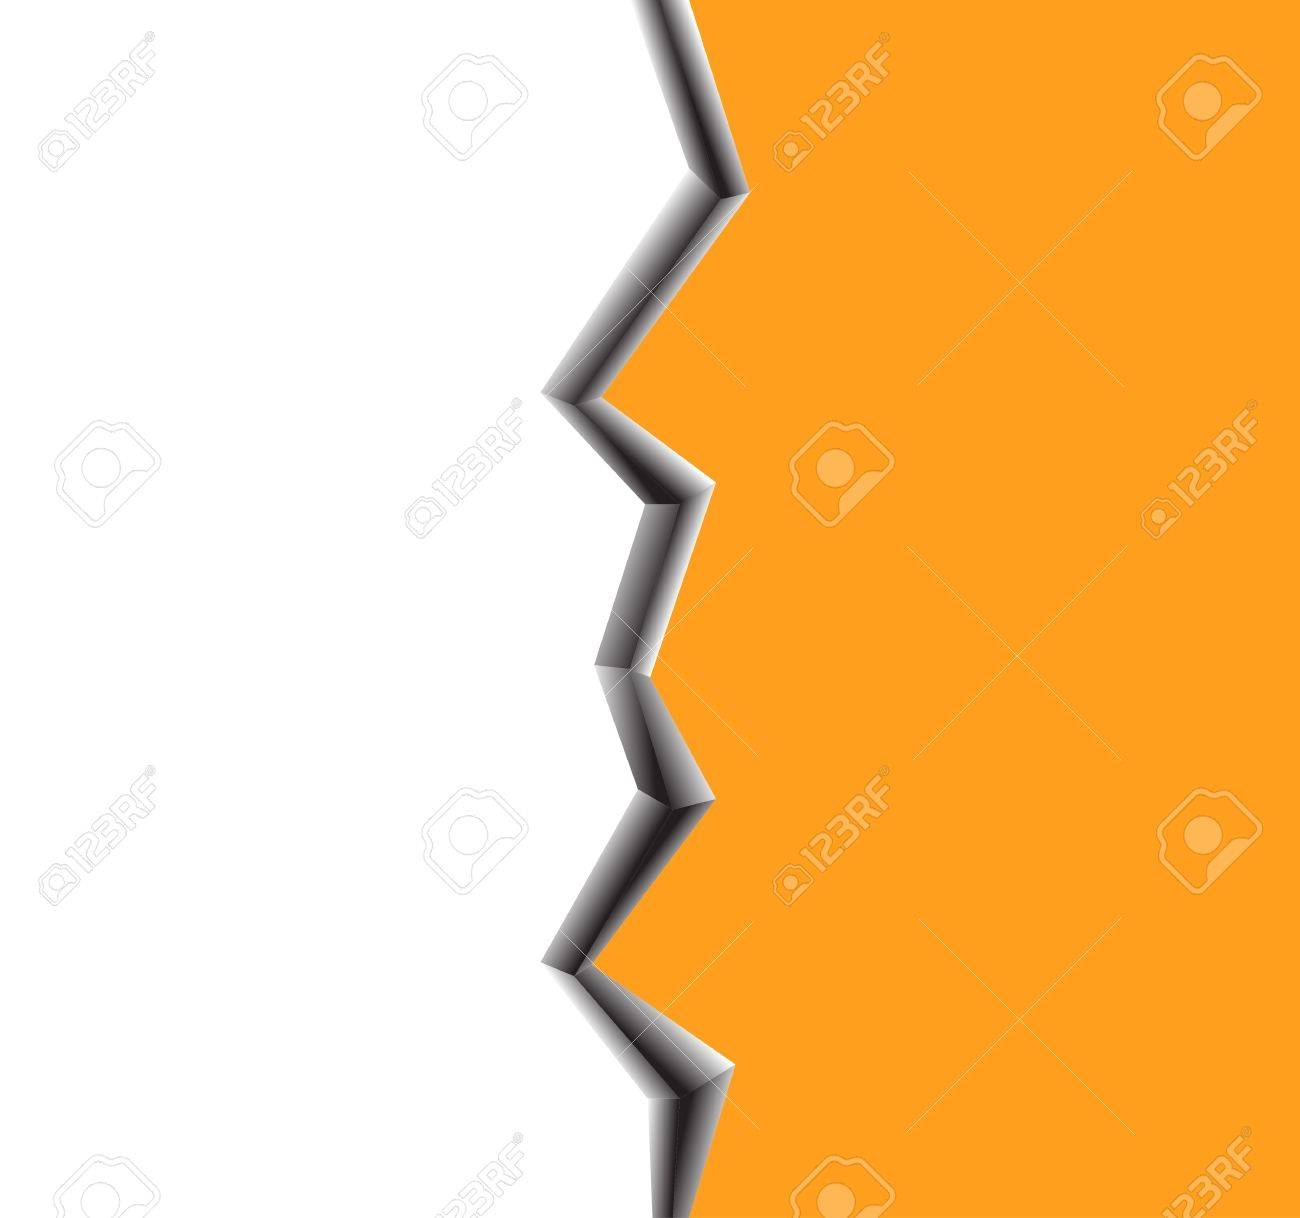 Illustration of a large crack on surface Stock Vector - 14753596